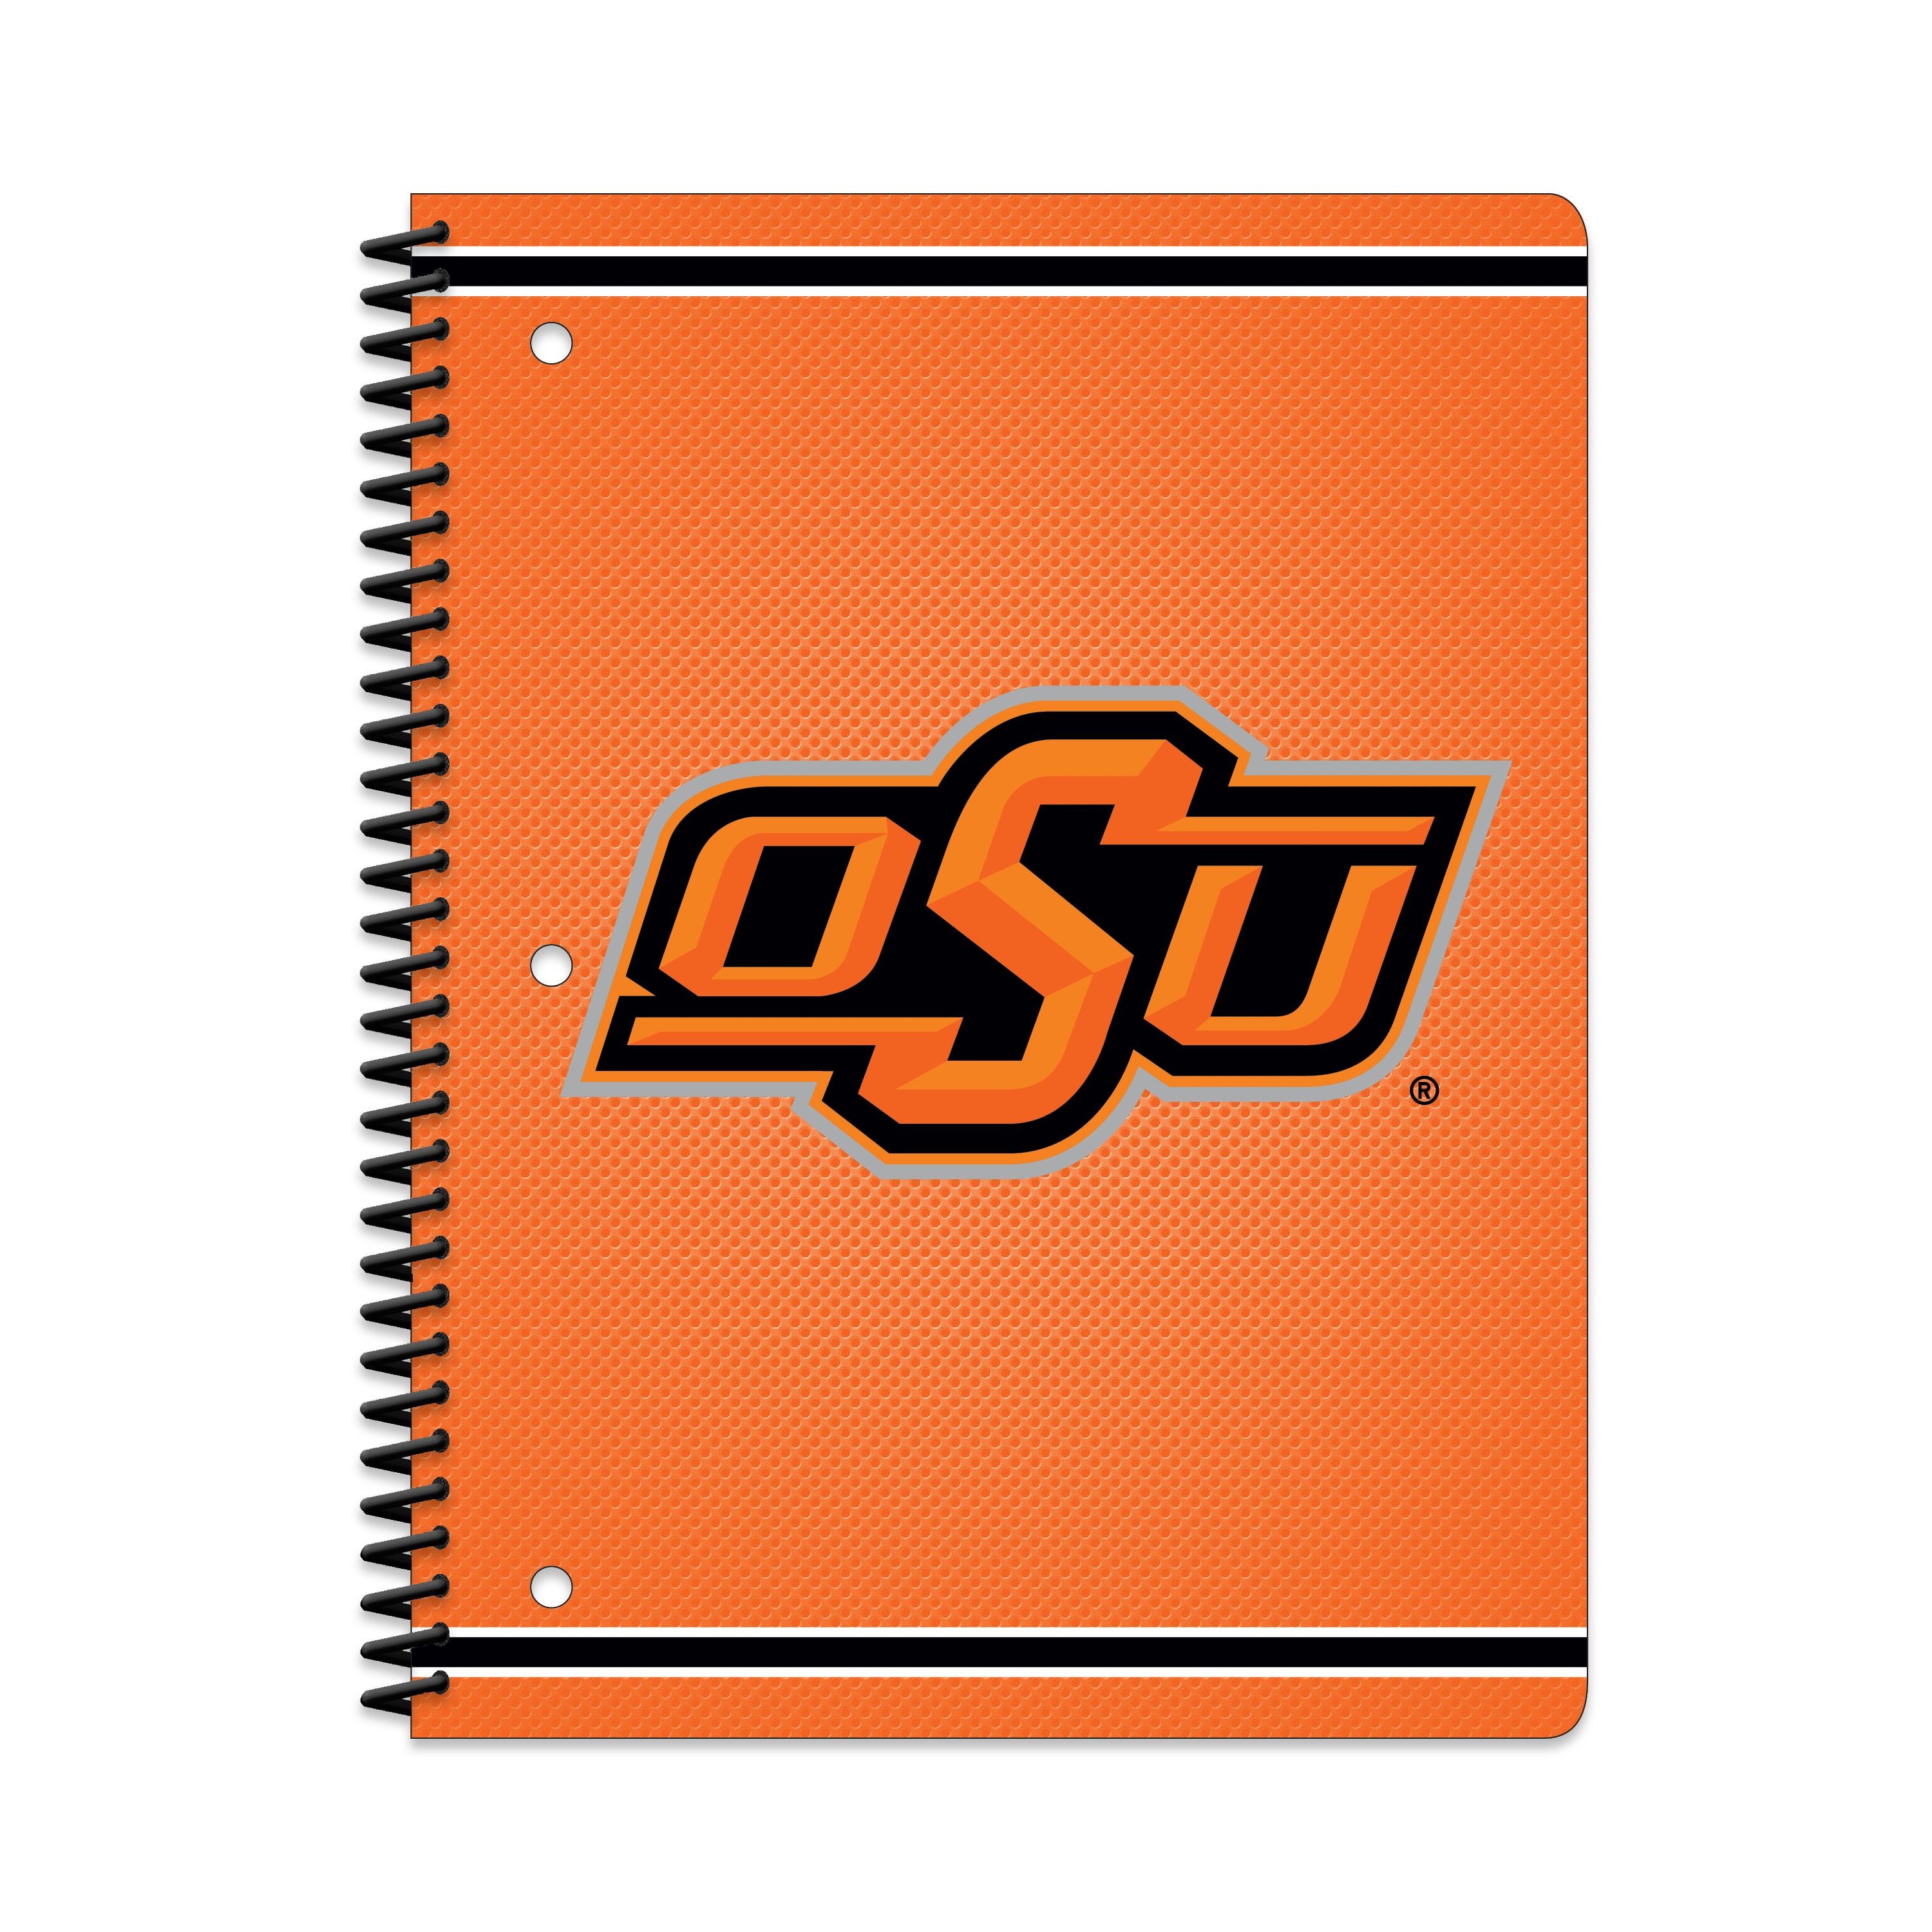 OK ST COWBOYS CLASSIC 1-SUBJECT NOTEBOOK